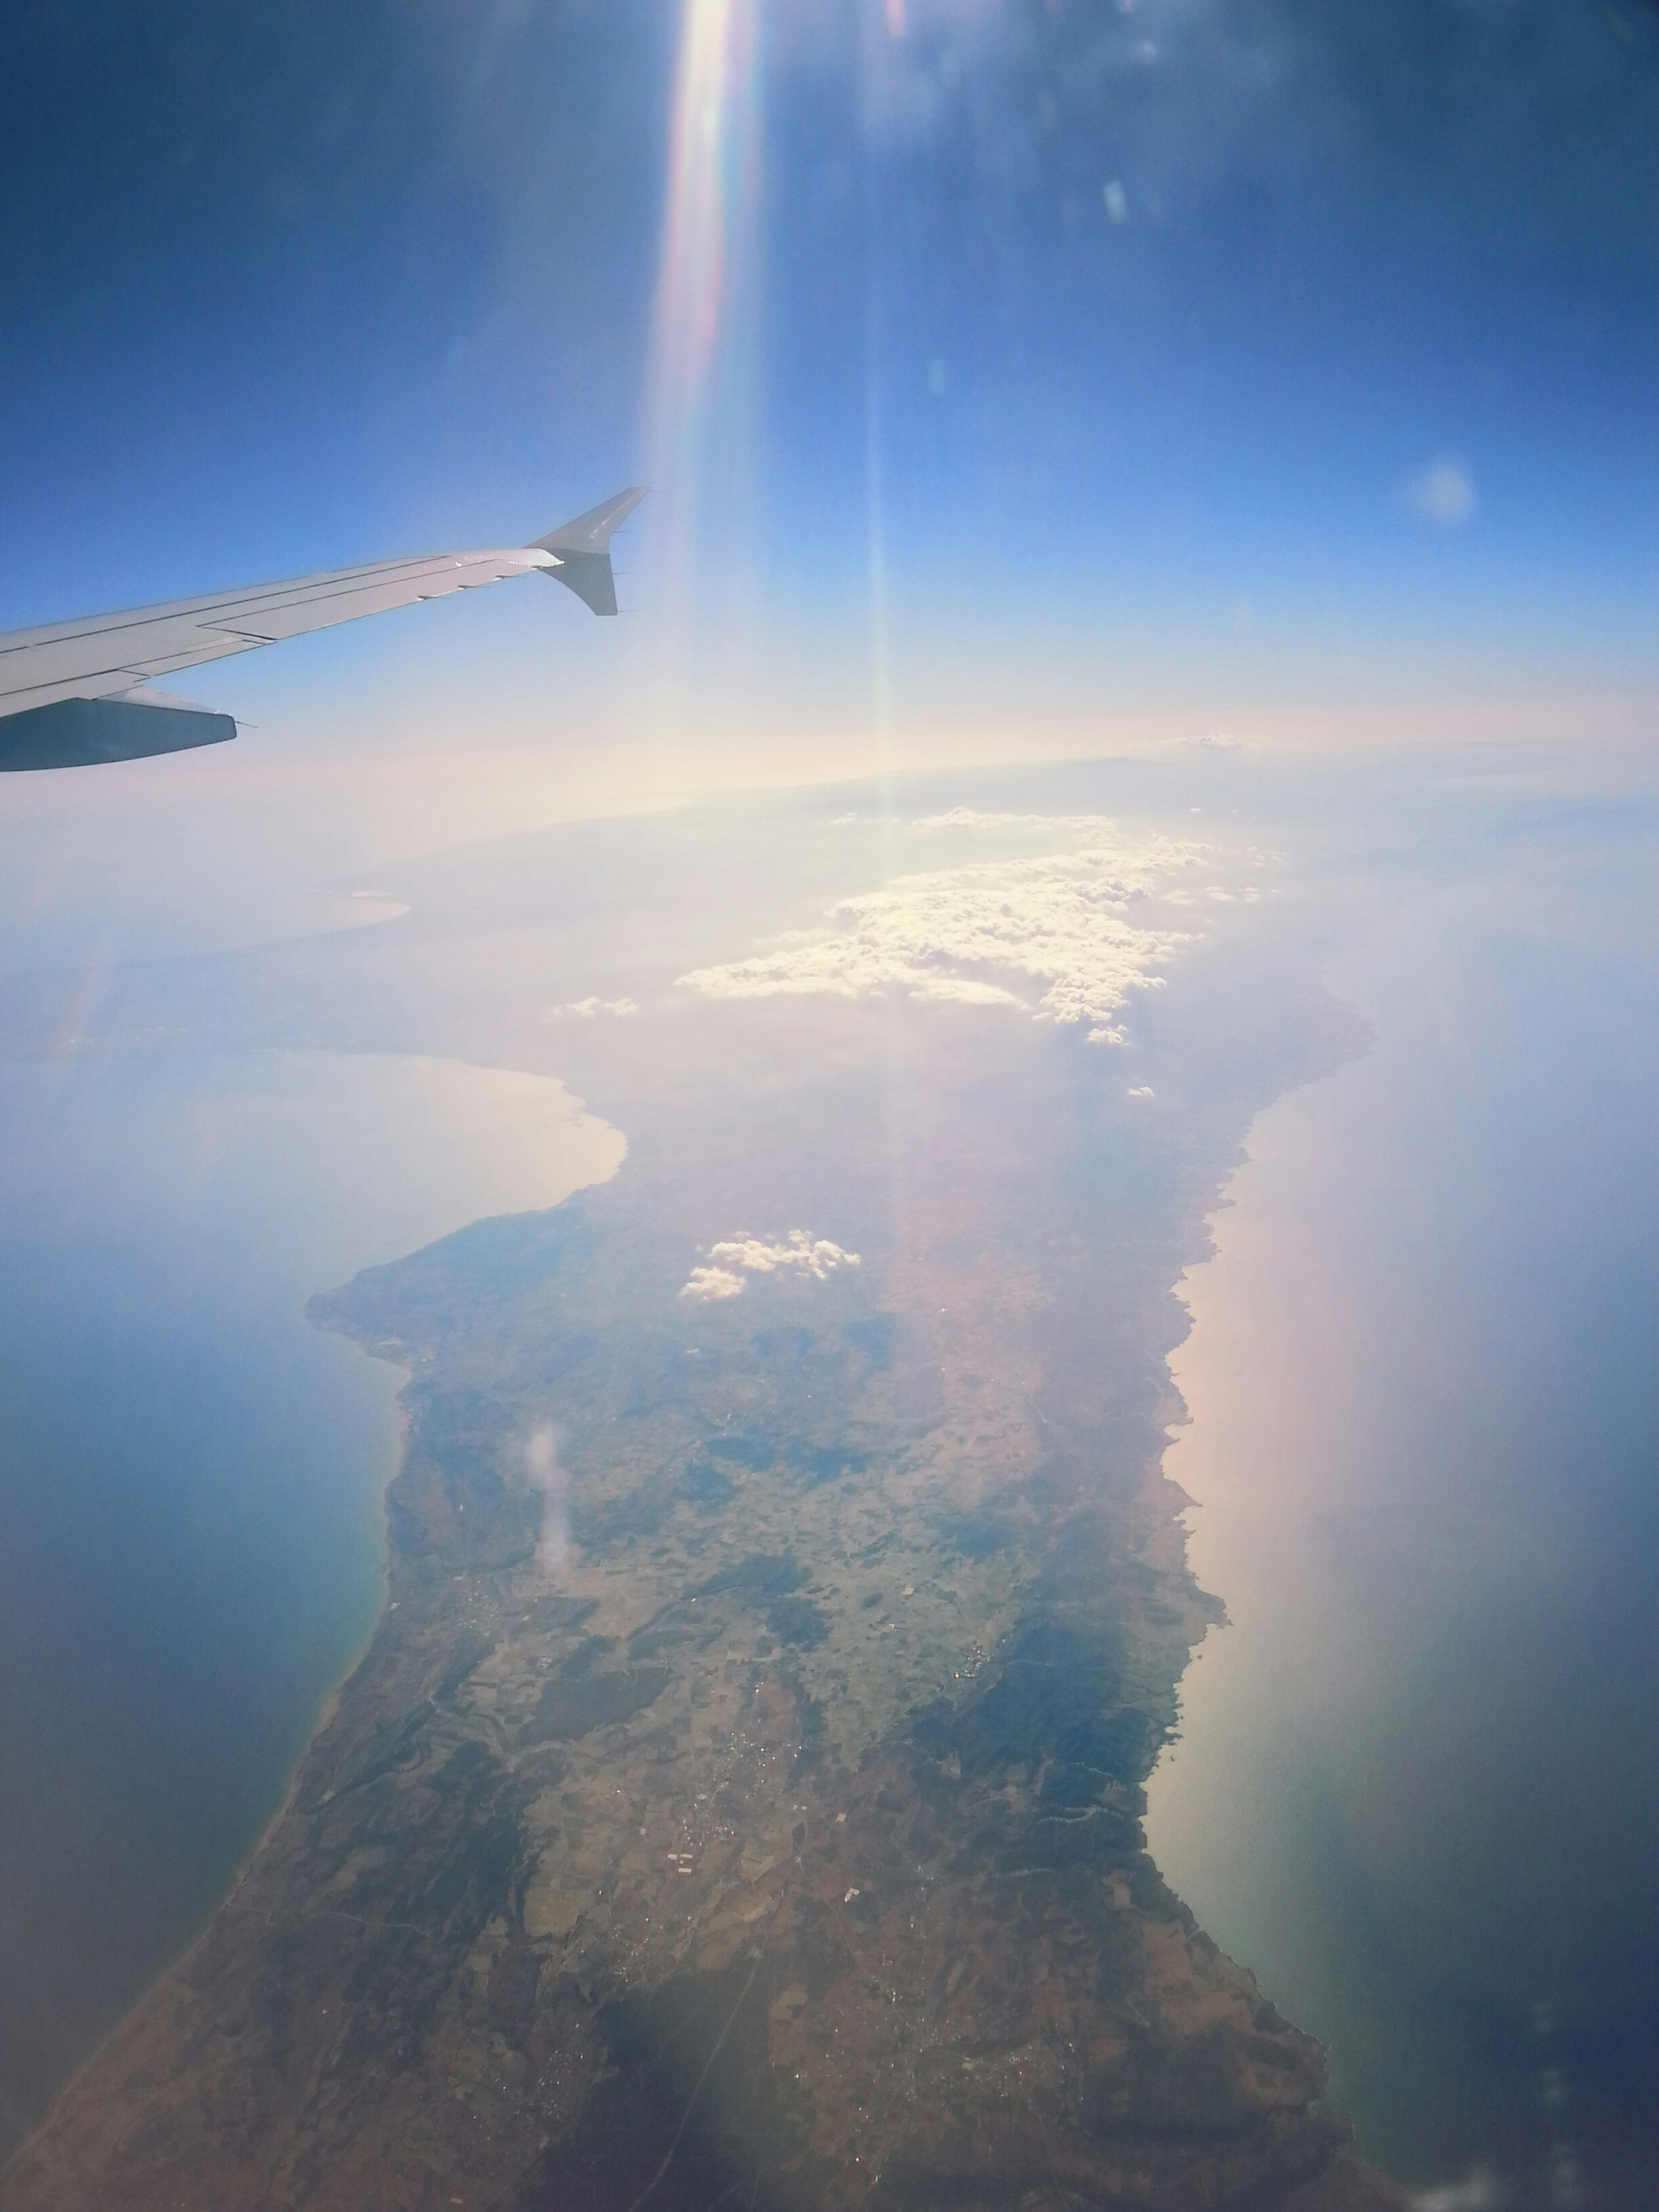 scenics, sea, beauty in nature, aerial view, tranquil scene, sky, flying, water, tranquility, nature, blue, horizon over water, idyllic, sunbeam, sunlight, airplane, mid-air, landscape, cloud - sky, mountain